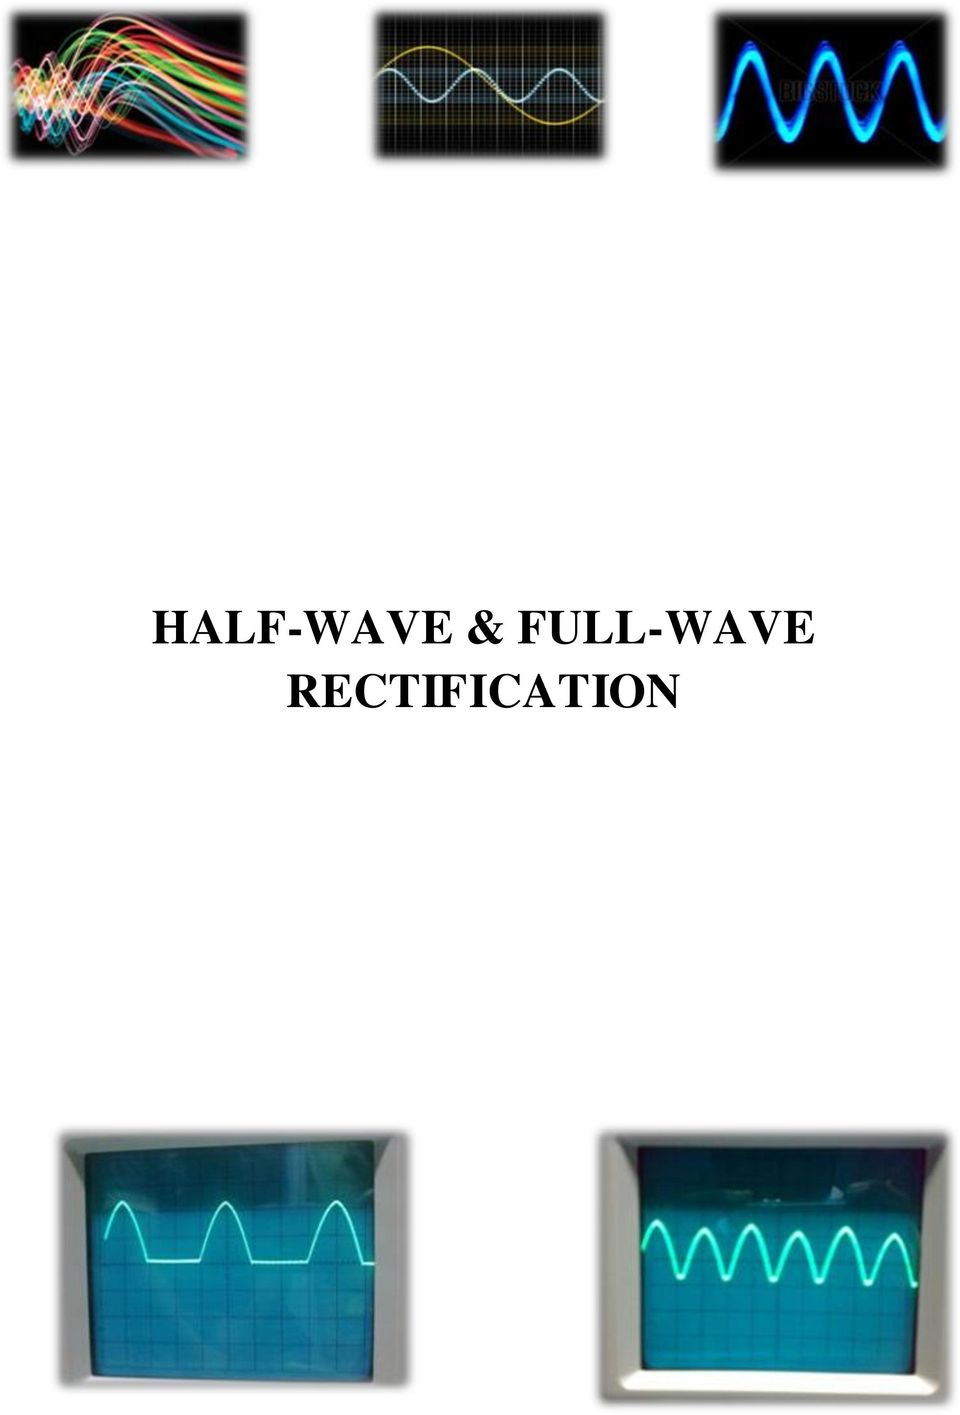 Half Wave Full Rectification Pdf Electronic Make It Easy Rectifier Circuit Diode And Reservoir To Understand The Term Mean Value As Alied A Rectified Waveform Effect Of